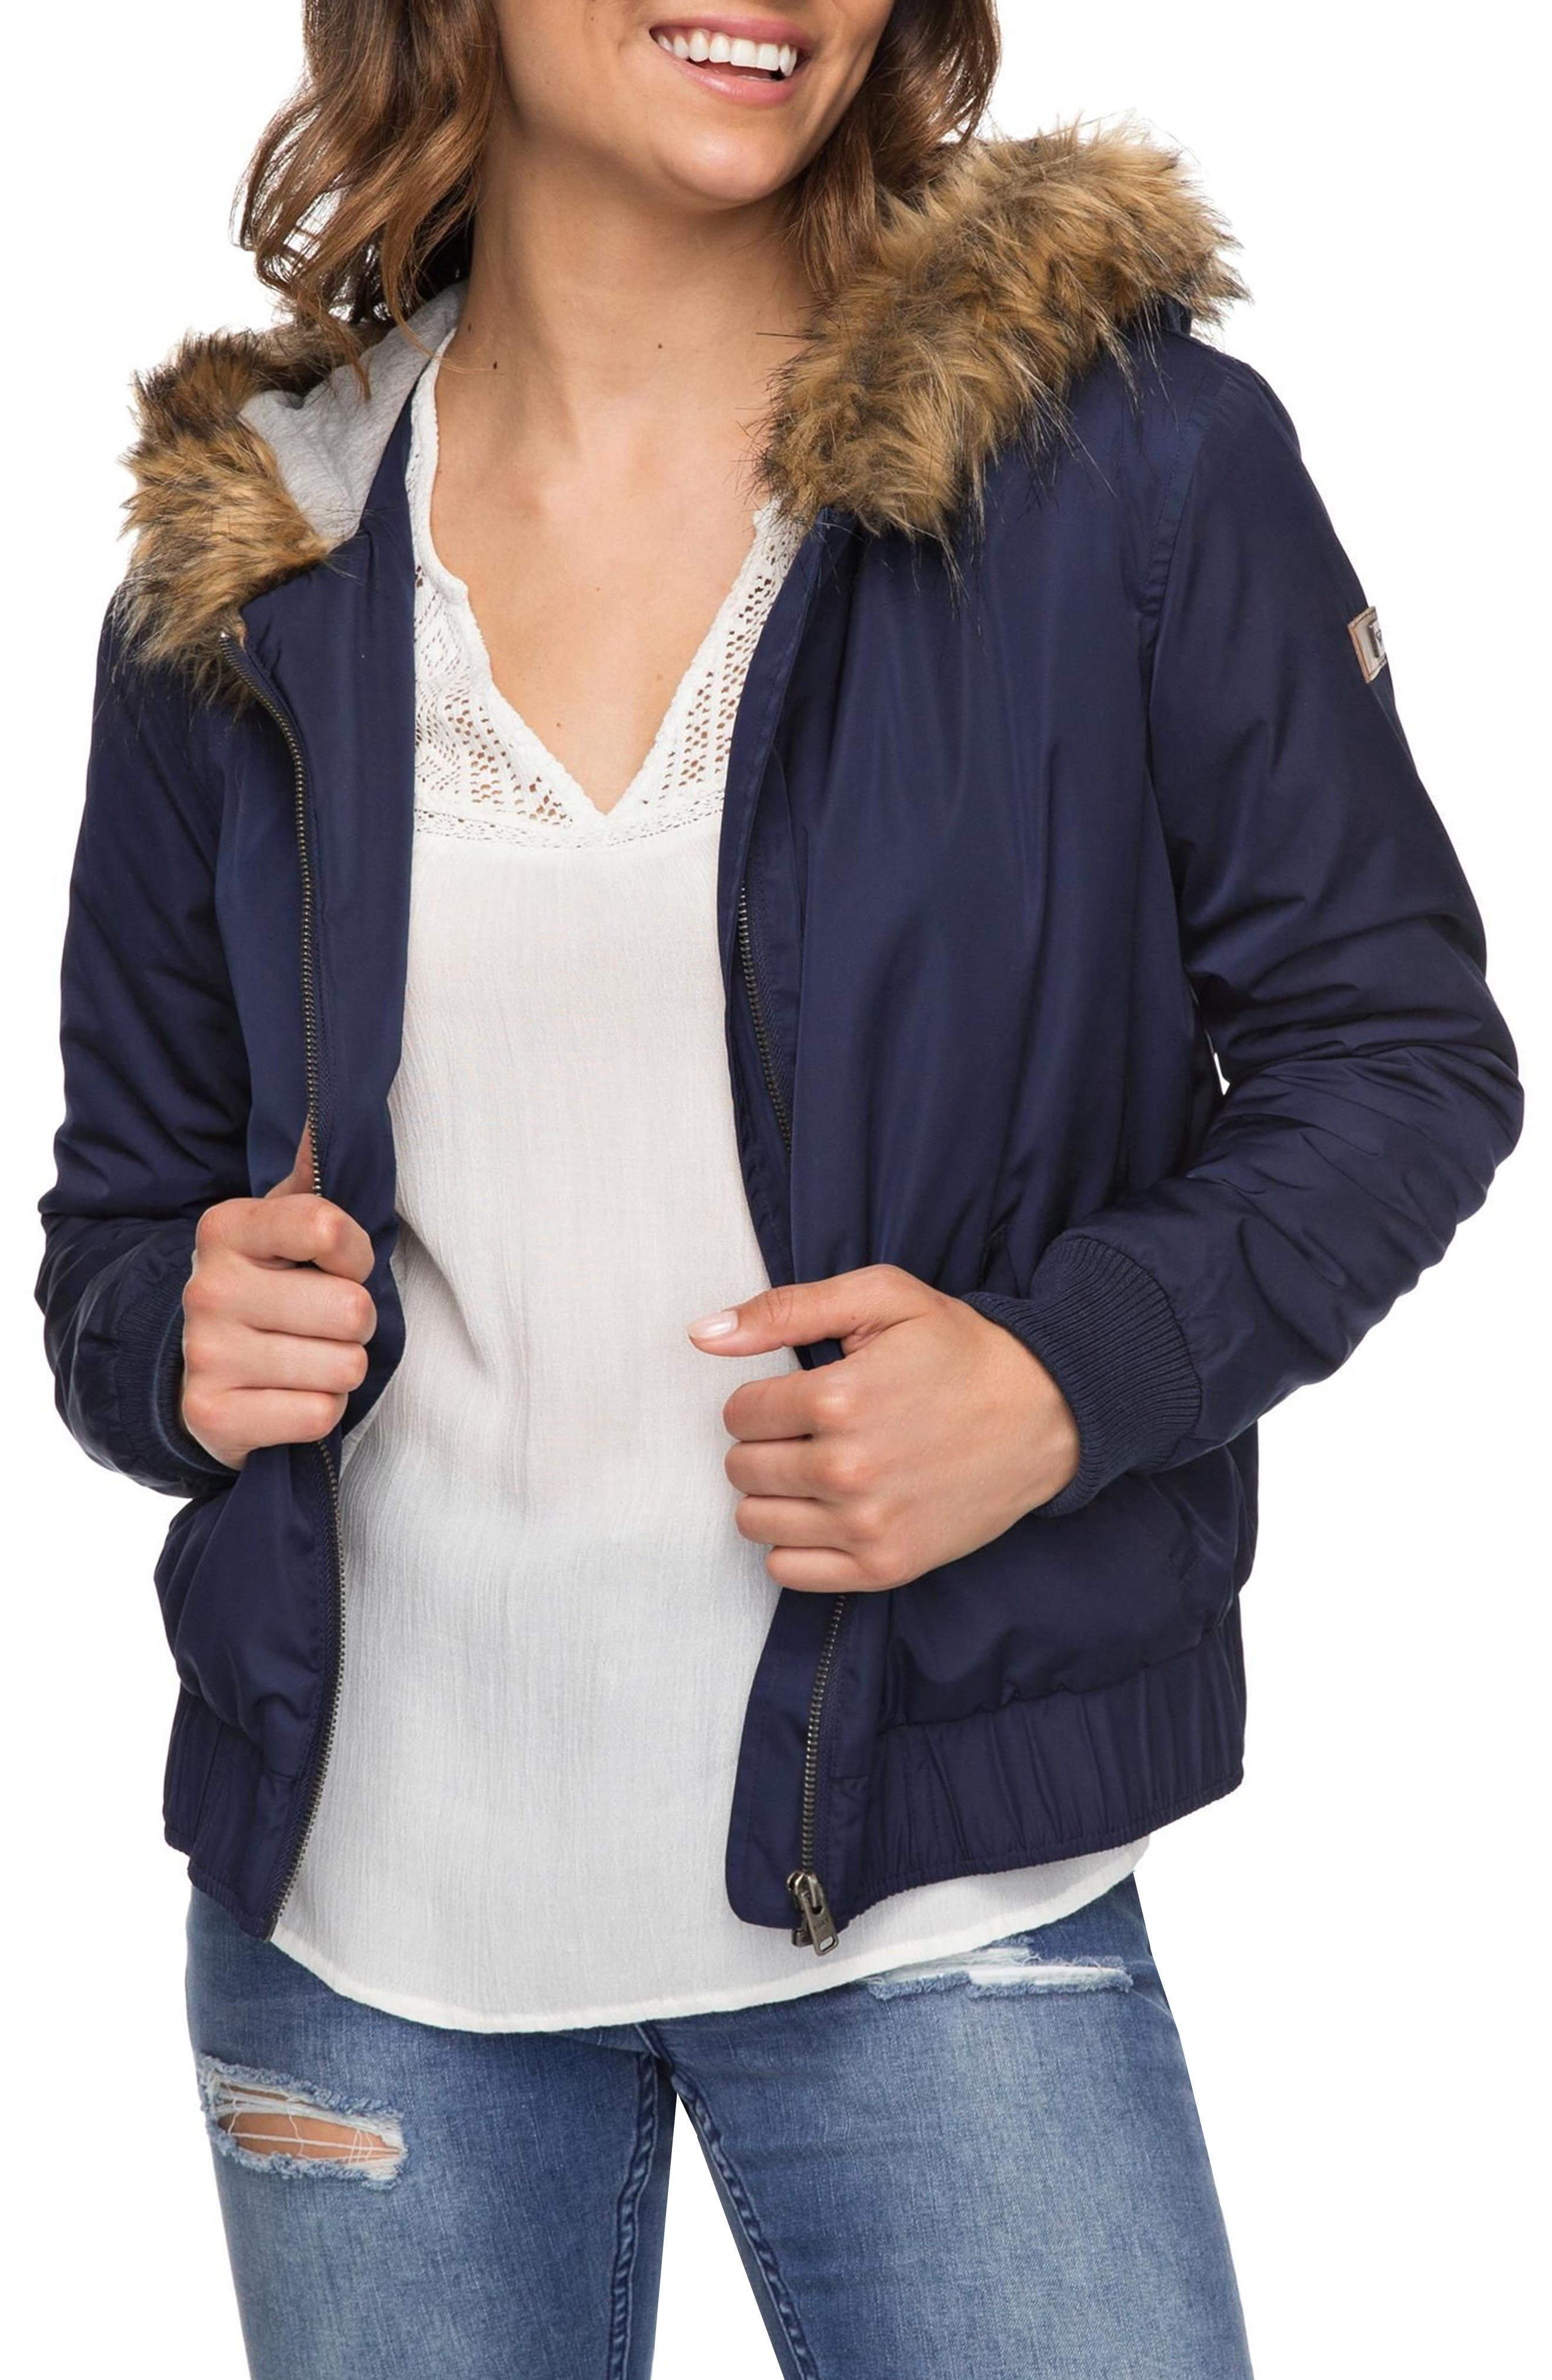 Oh Reely Faux Fur Bomber Jacket,                             Main thumbnail 1, color,                             Dress Blues